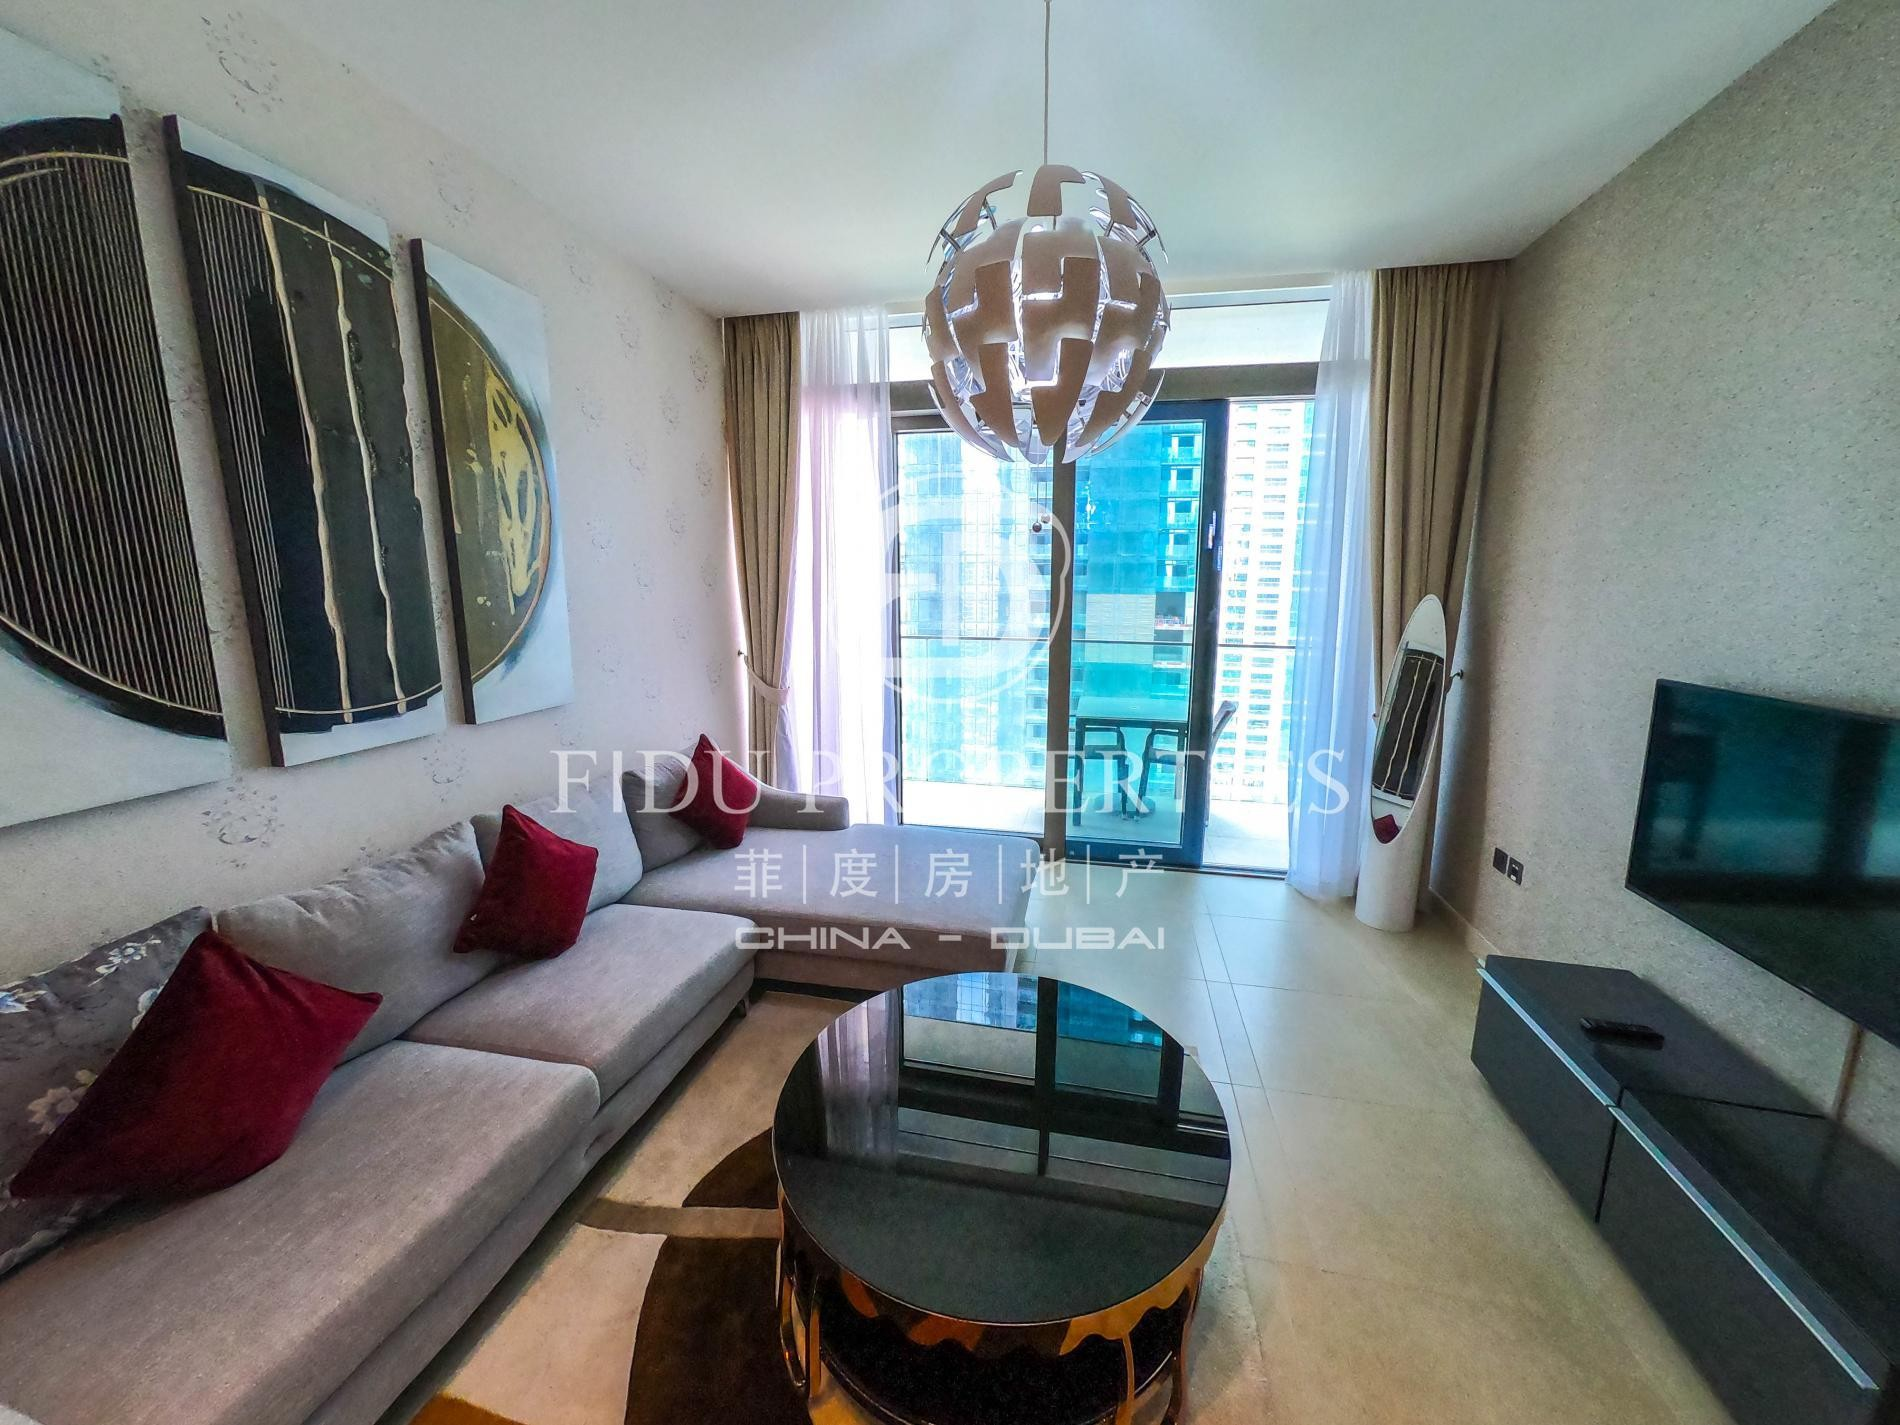 Furnished   Serviced Unit   Partial Marina View